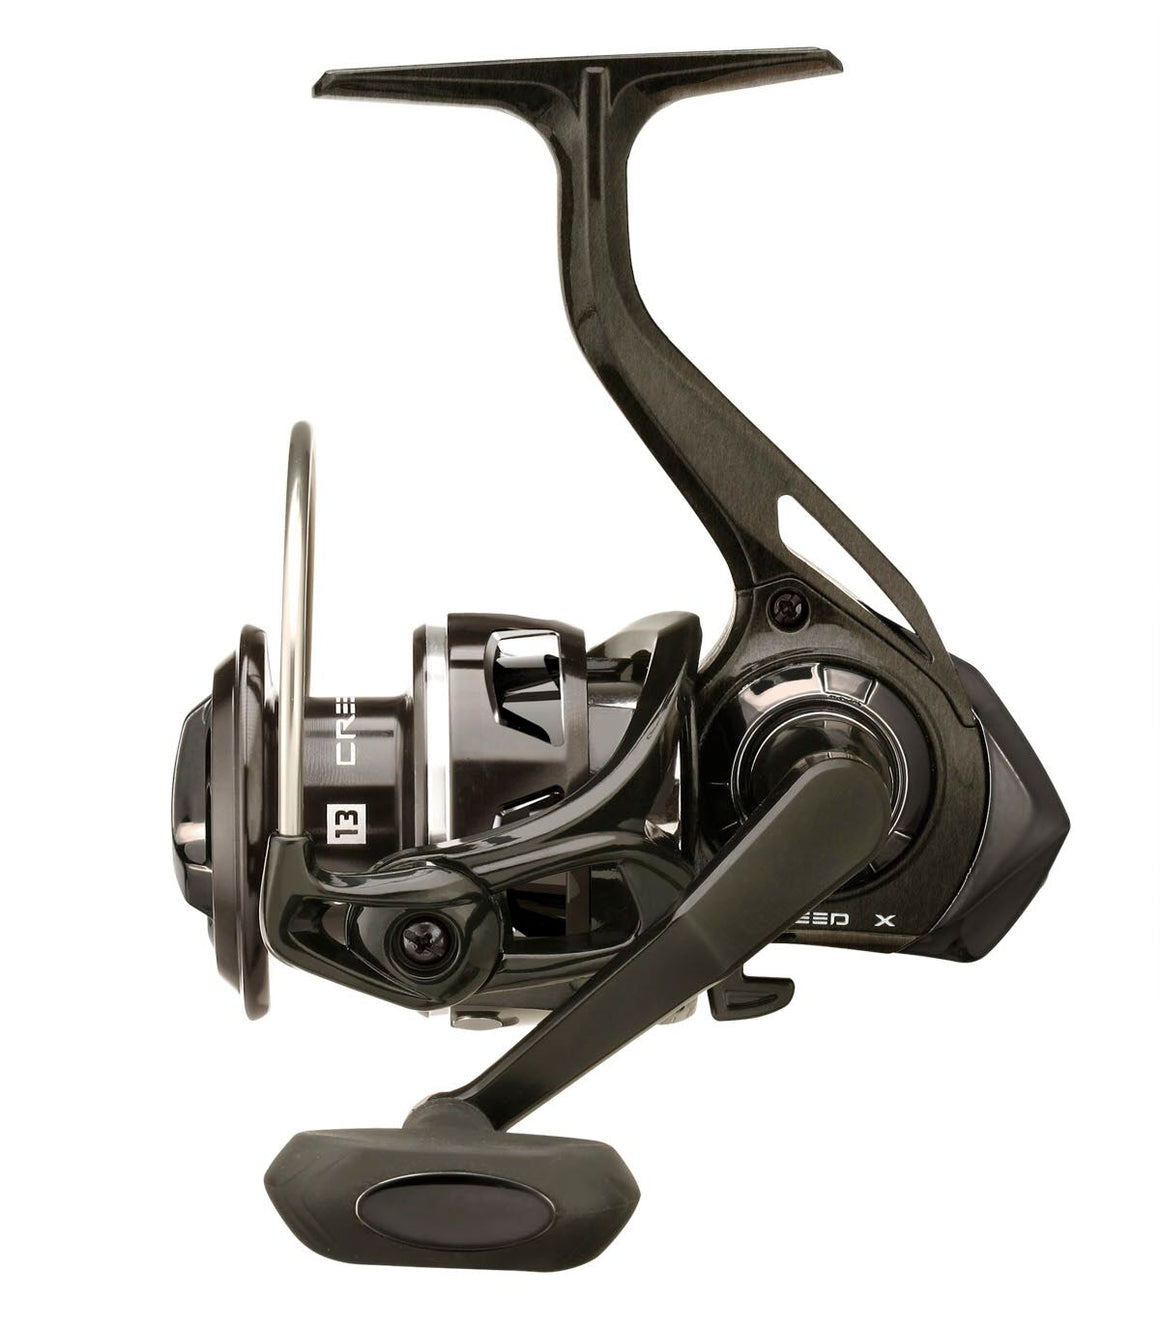 13 Fishing Creed X Spinning Reel - Direct Fishing Sales